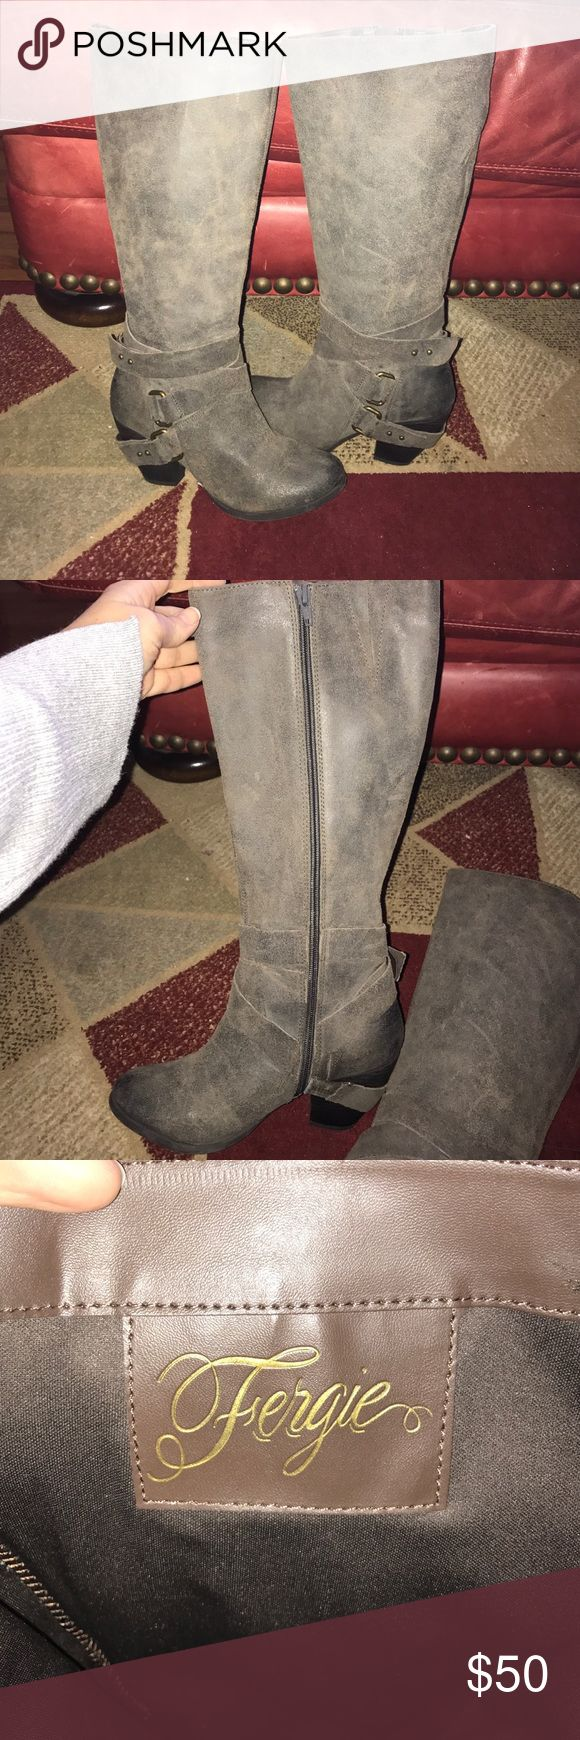 """Fergie LEGEND TOO leather boots herb color sz 7 With box, worn once. Paid $180+tax for these. """"herb"""" color and very unique- grey-ish/brown color with brass colored hardware. Zipper closure on the inside. The top buckle is starting to separate but could easily be glue back. Leather. Size 7. Fergie brand, from von maur. No trades price is firm Fergie Shoes Heeled Boots"""